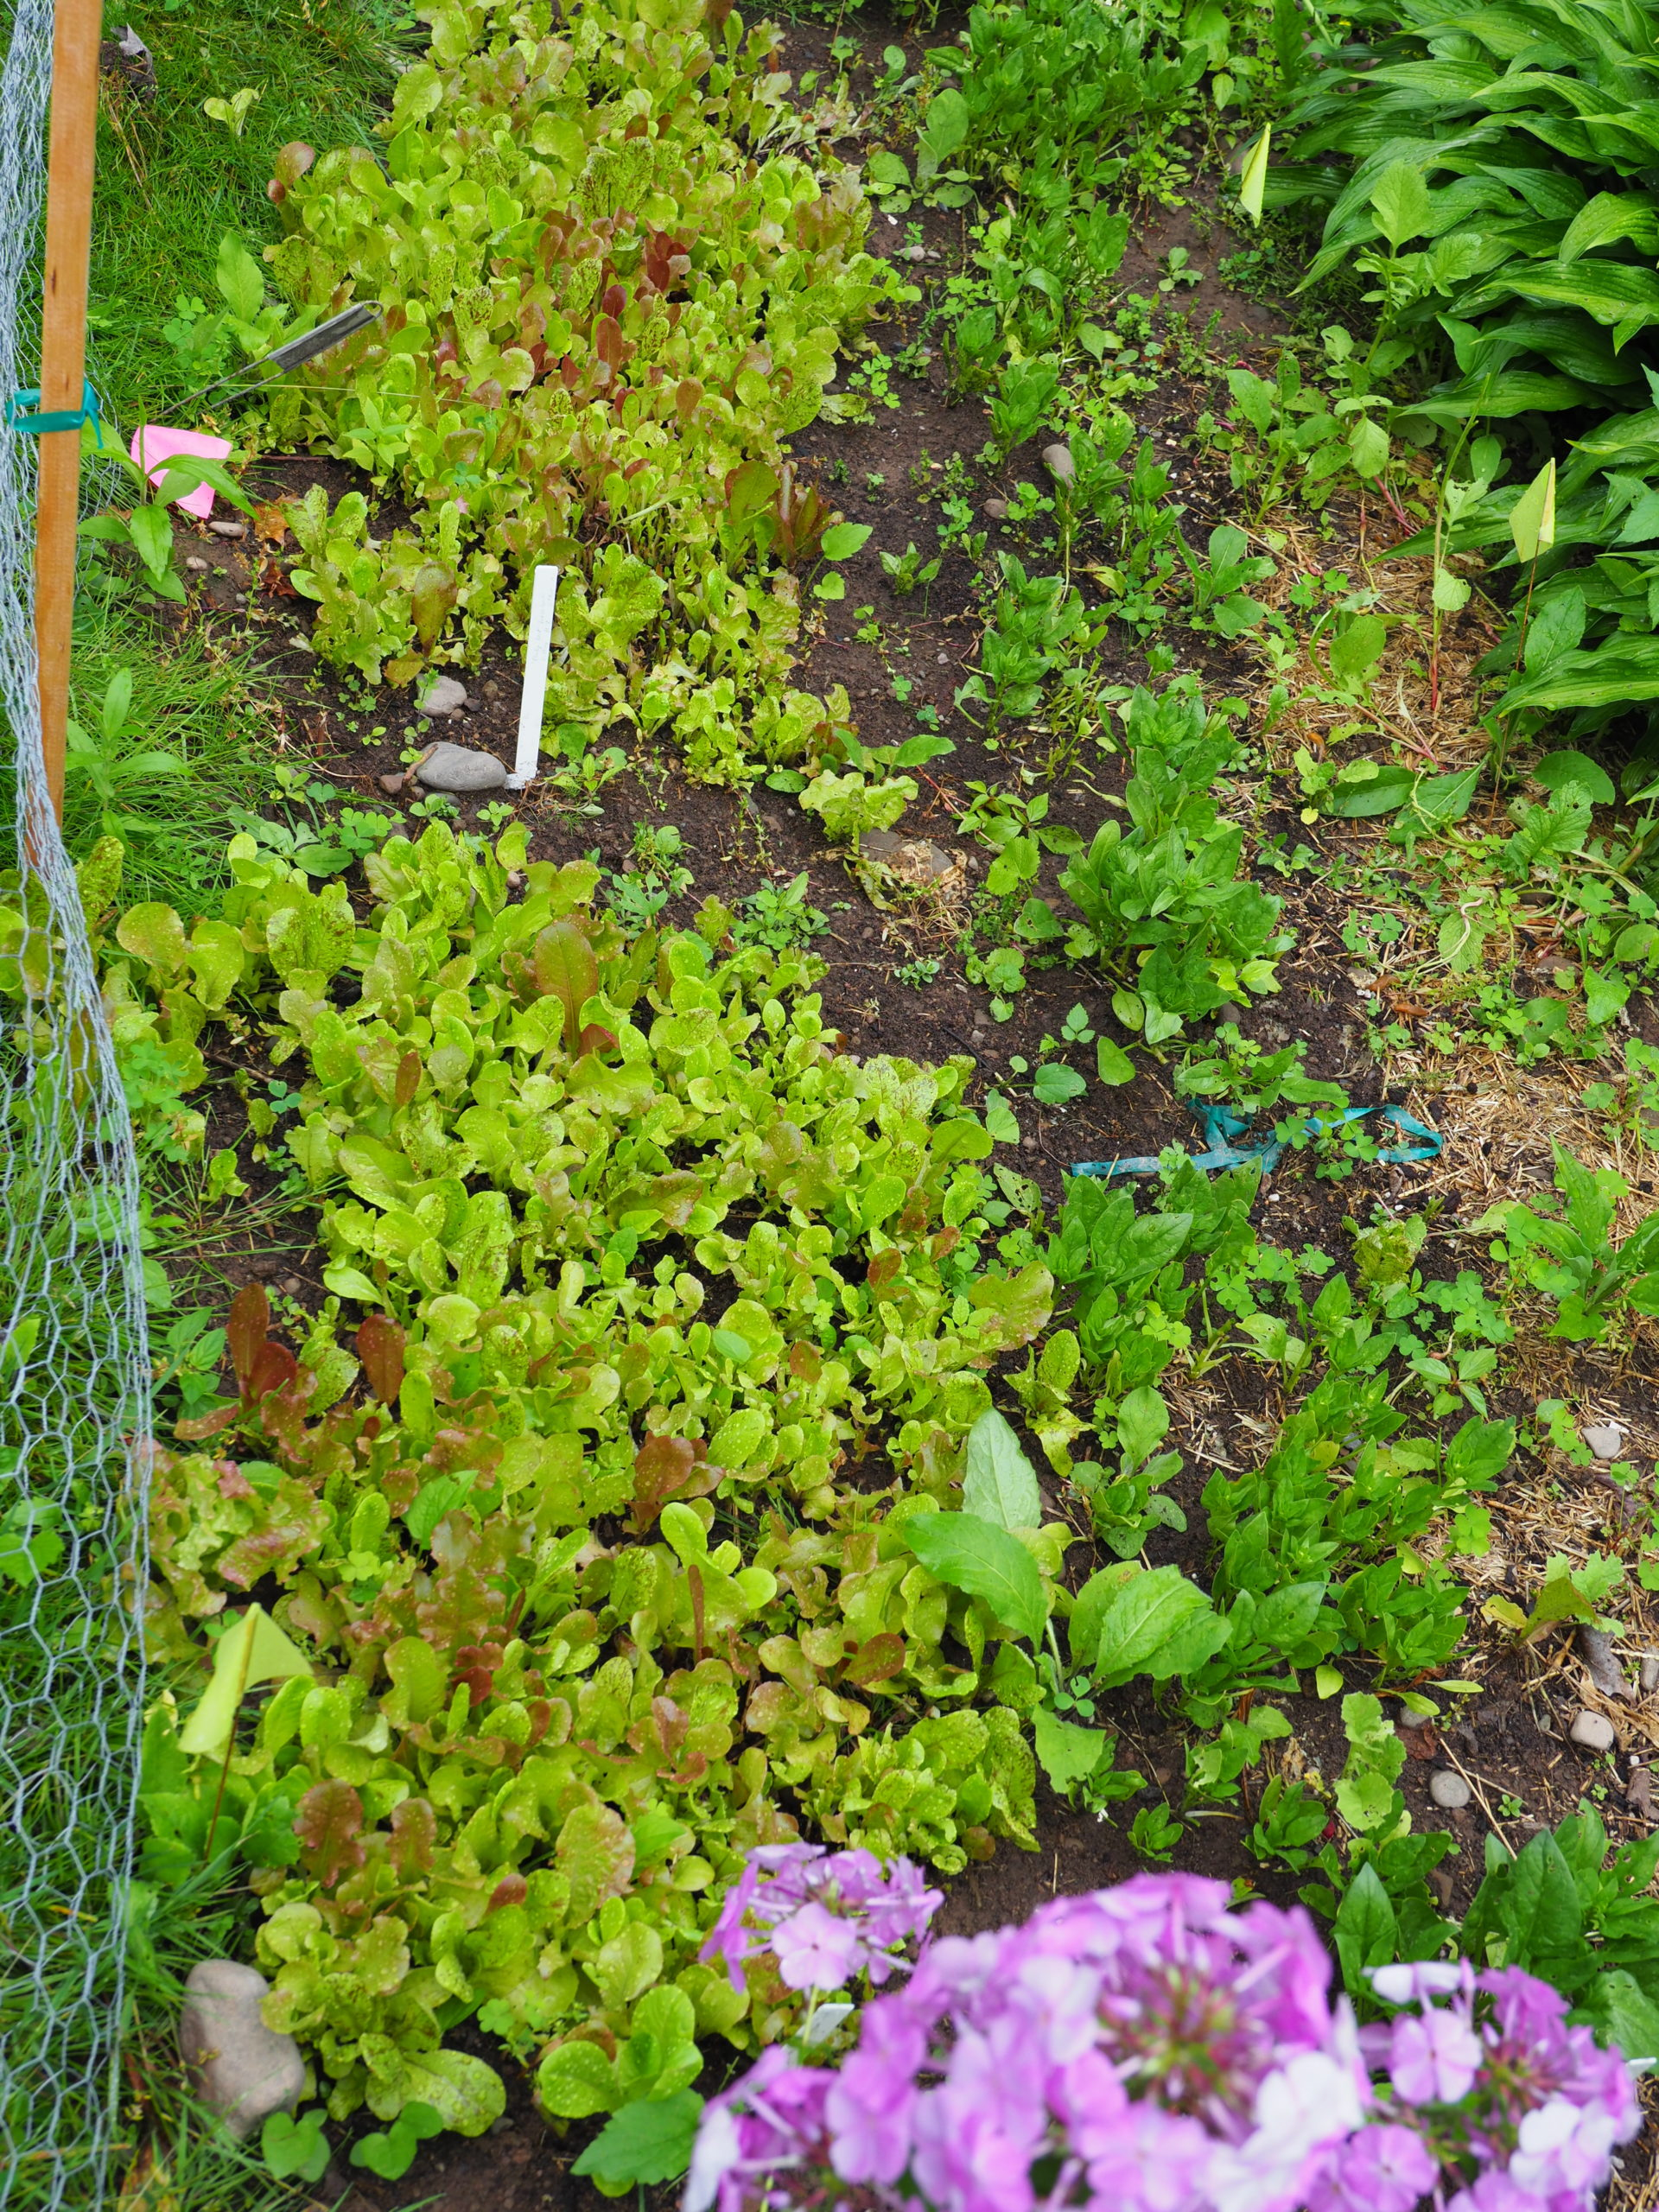 The two baby lettuce plots planted a month apart are on the left. The two plots of less than 15 square feet supply enough salad greens for two people for up to 12 weeks.